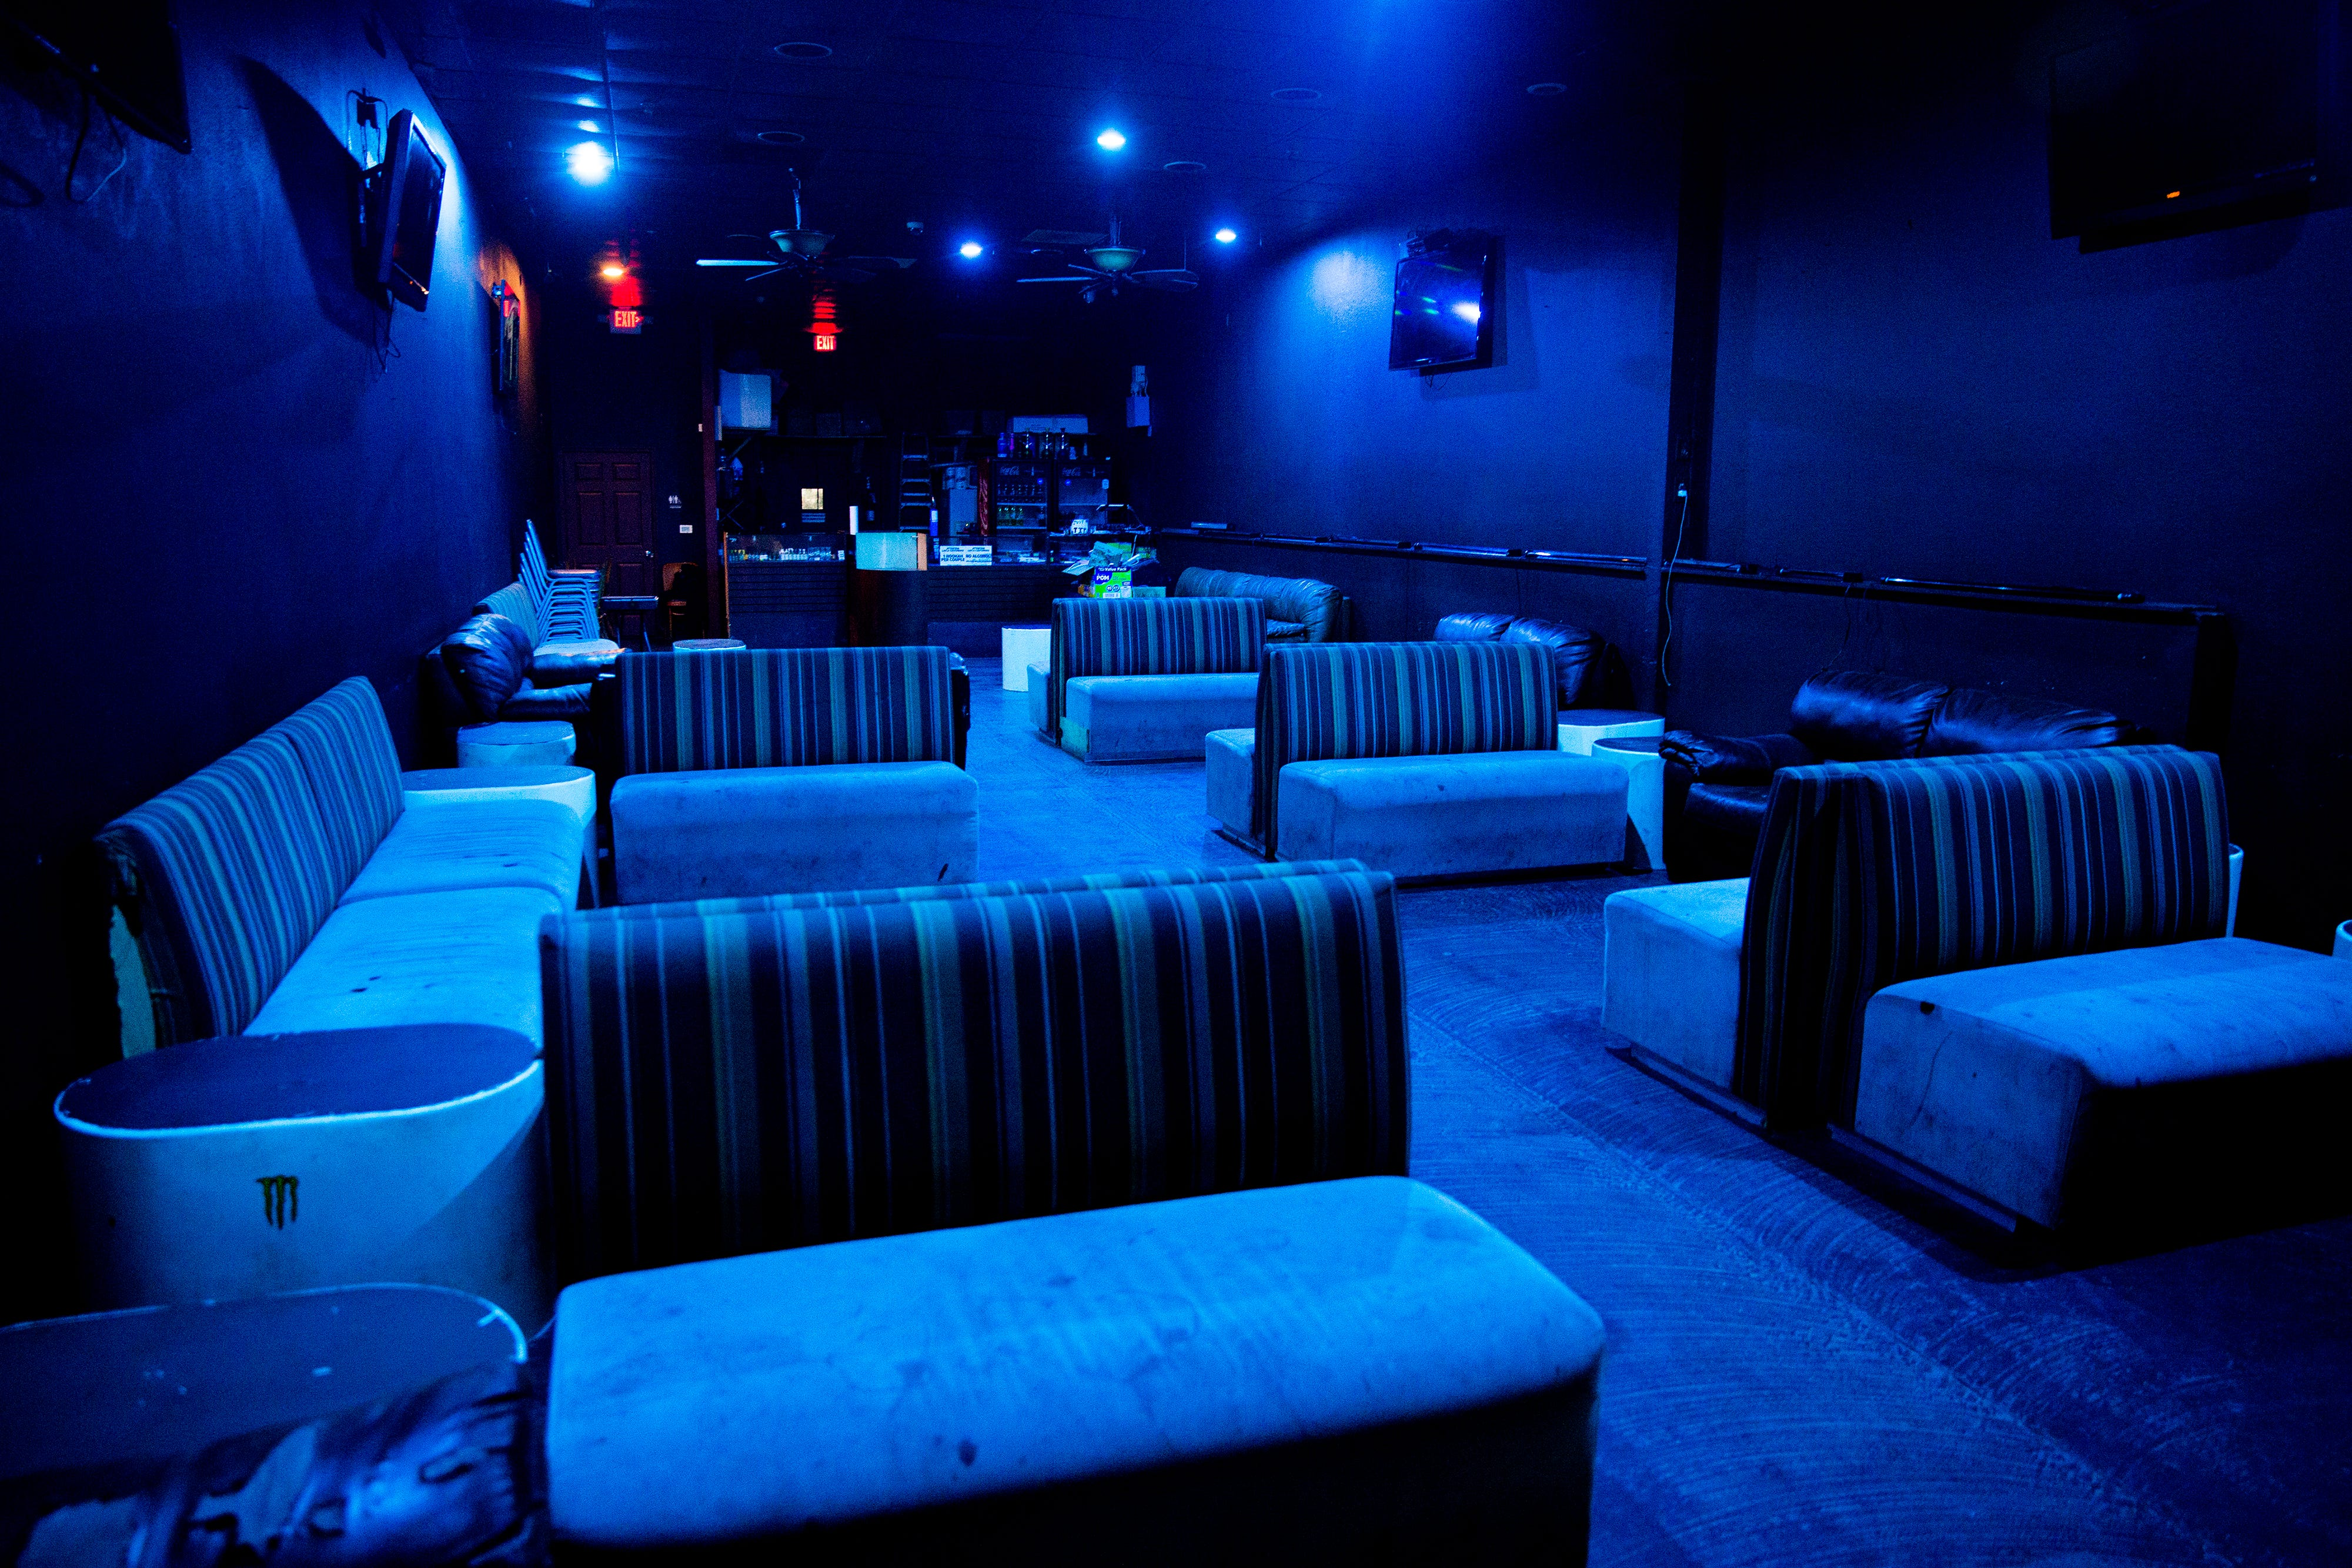 Attractive Layla Hookah Lounge Remains Closed In Estero, Fla.